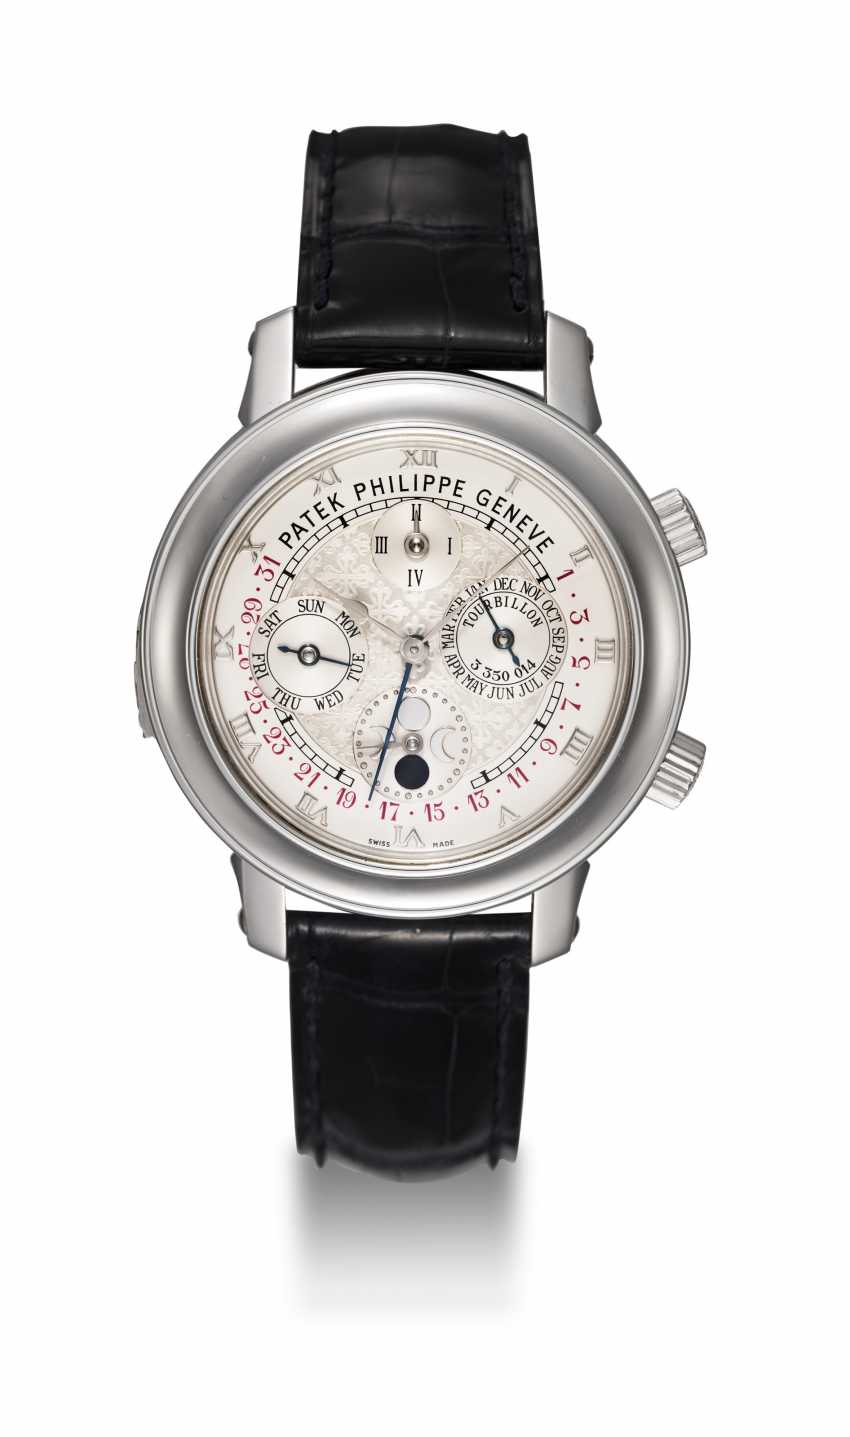 PATEK PHILIPPE, REF. 5002P-001 SKY MOON TOURBILLON, AN EXTREMELY RARE PLATINUM DOUBLE DIALED WRISTWATCH WITH 12 COMPLICATIONS - photo 3